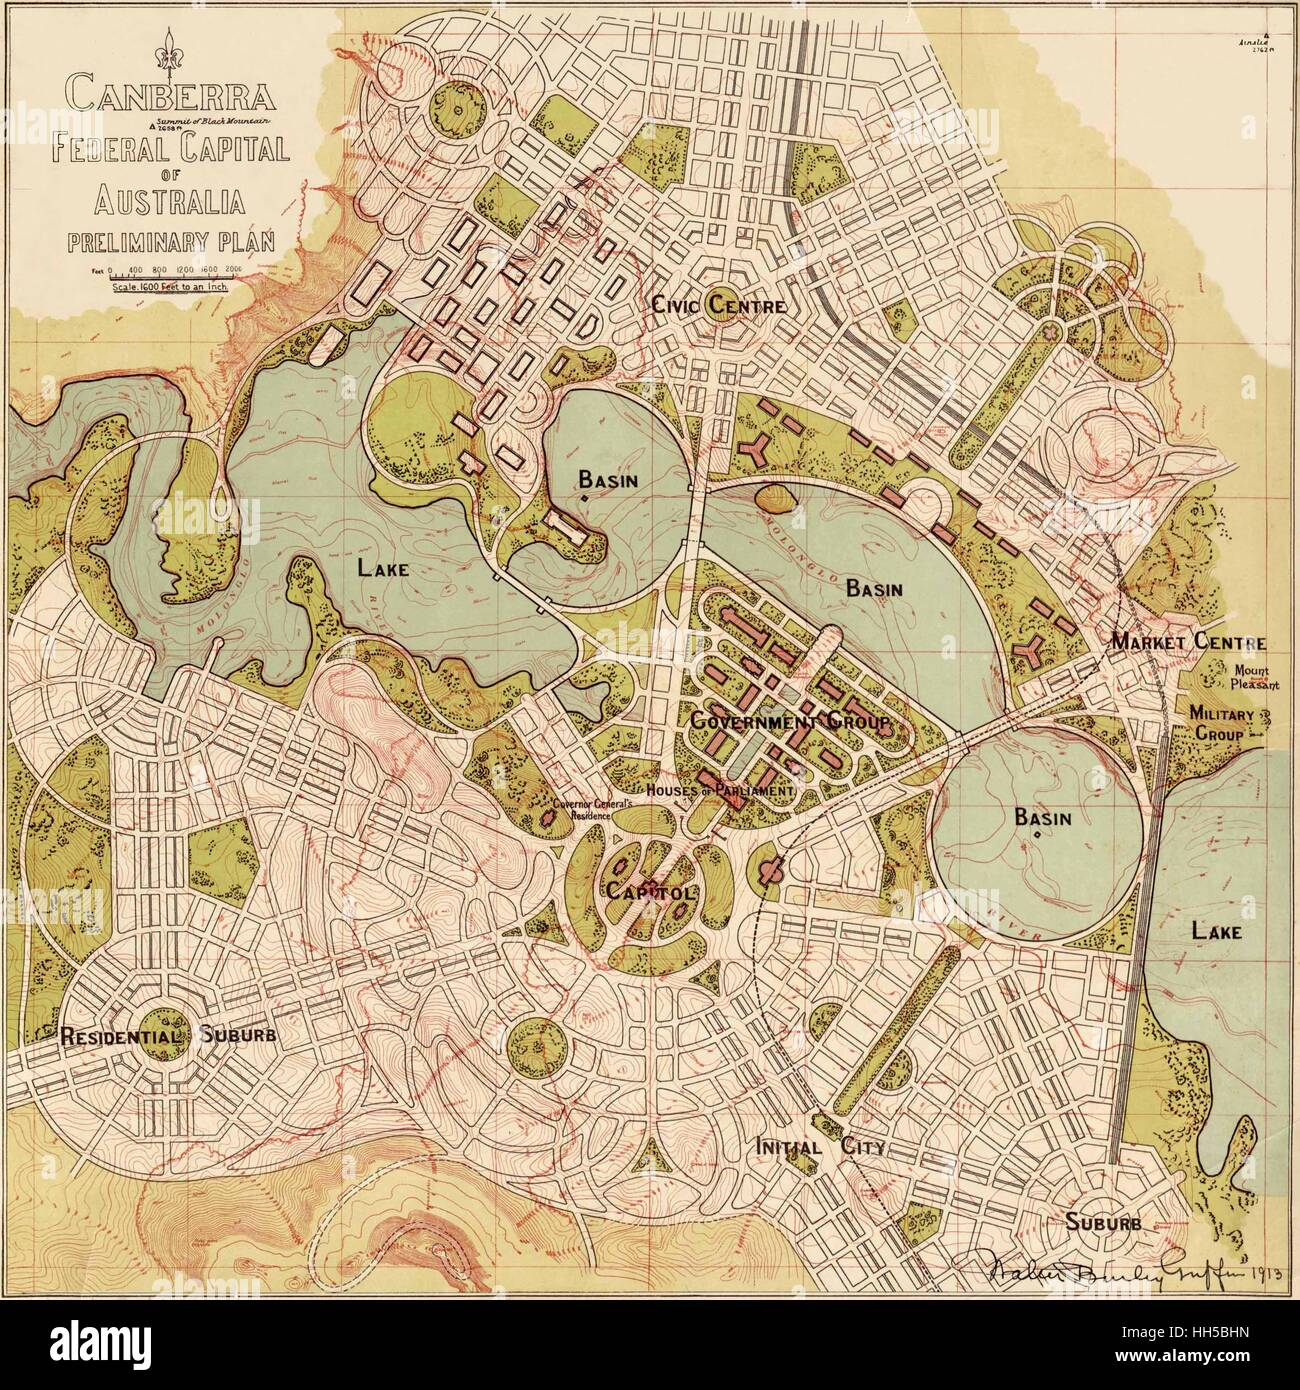 Map Of Canberra Vintage Map Of Canberra Stock Photos Vintage Map Of Canberra